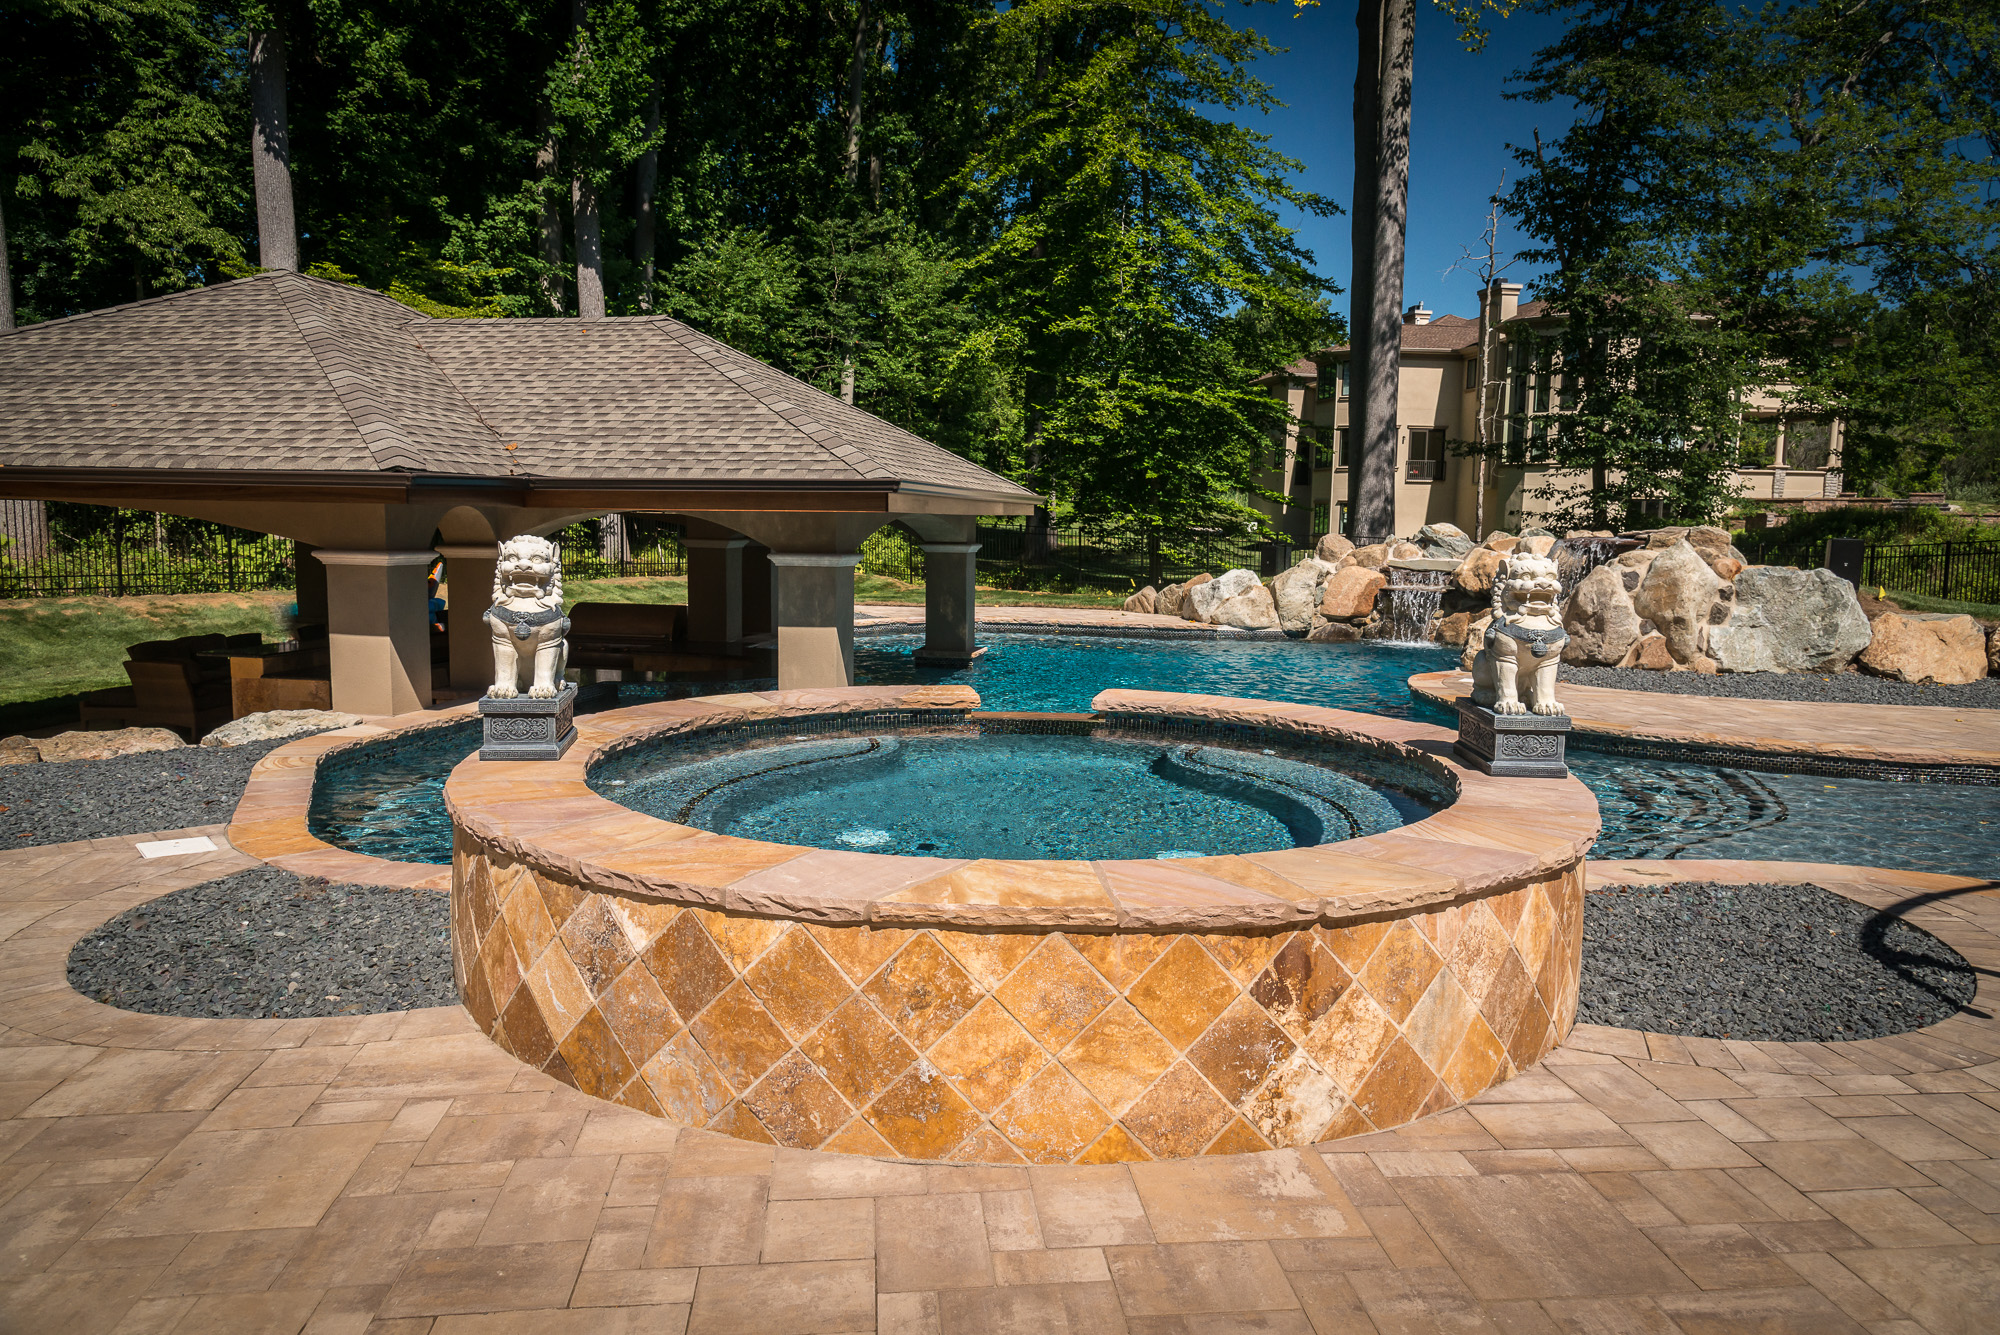 Pools by design 100 backyard by design nature by design landscape - Design a pool online ...